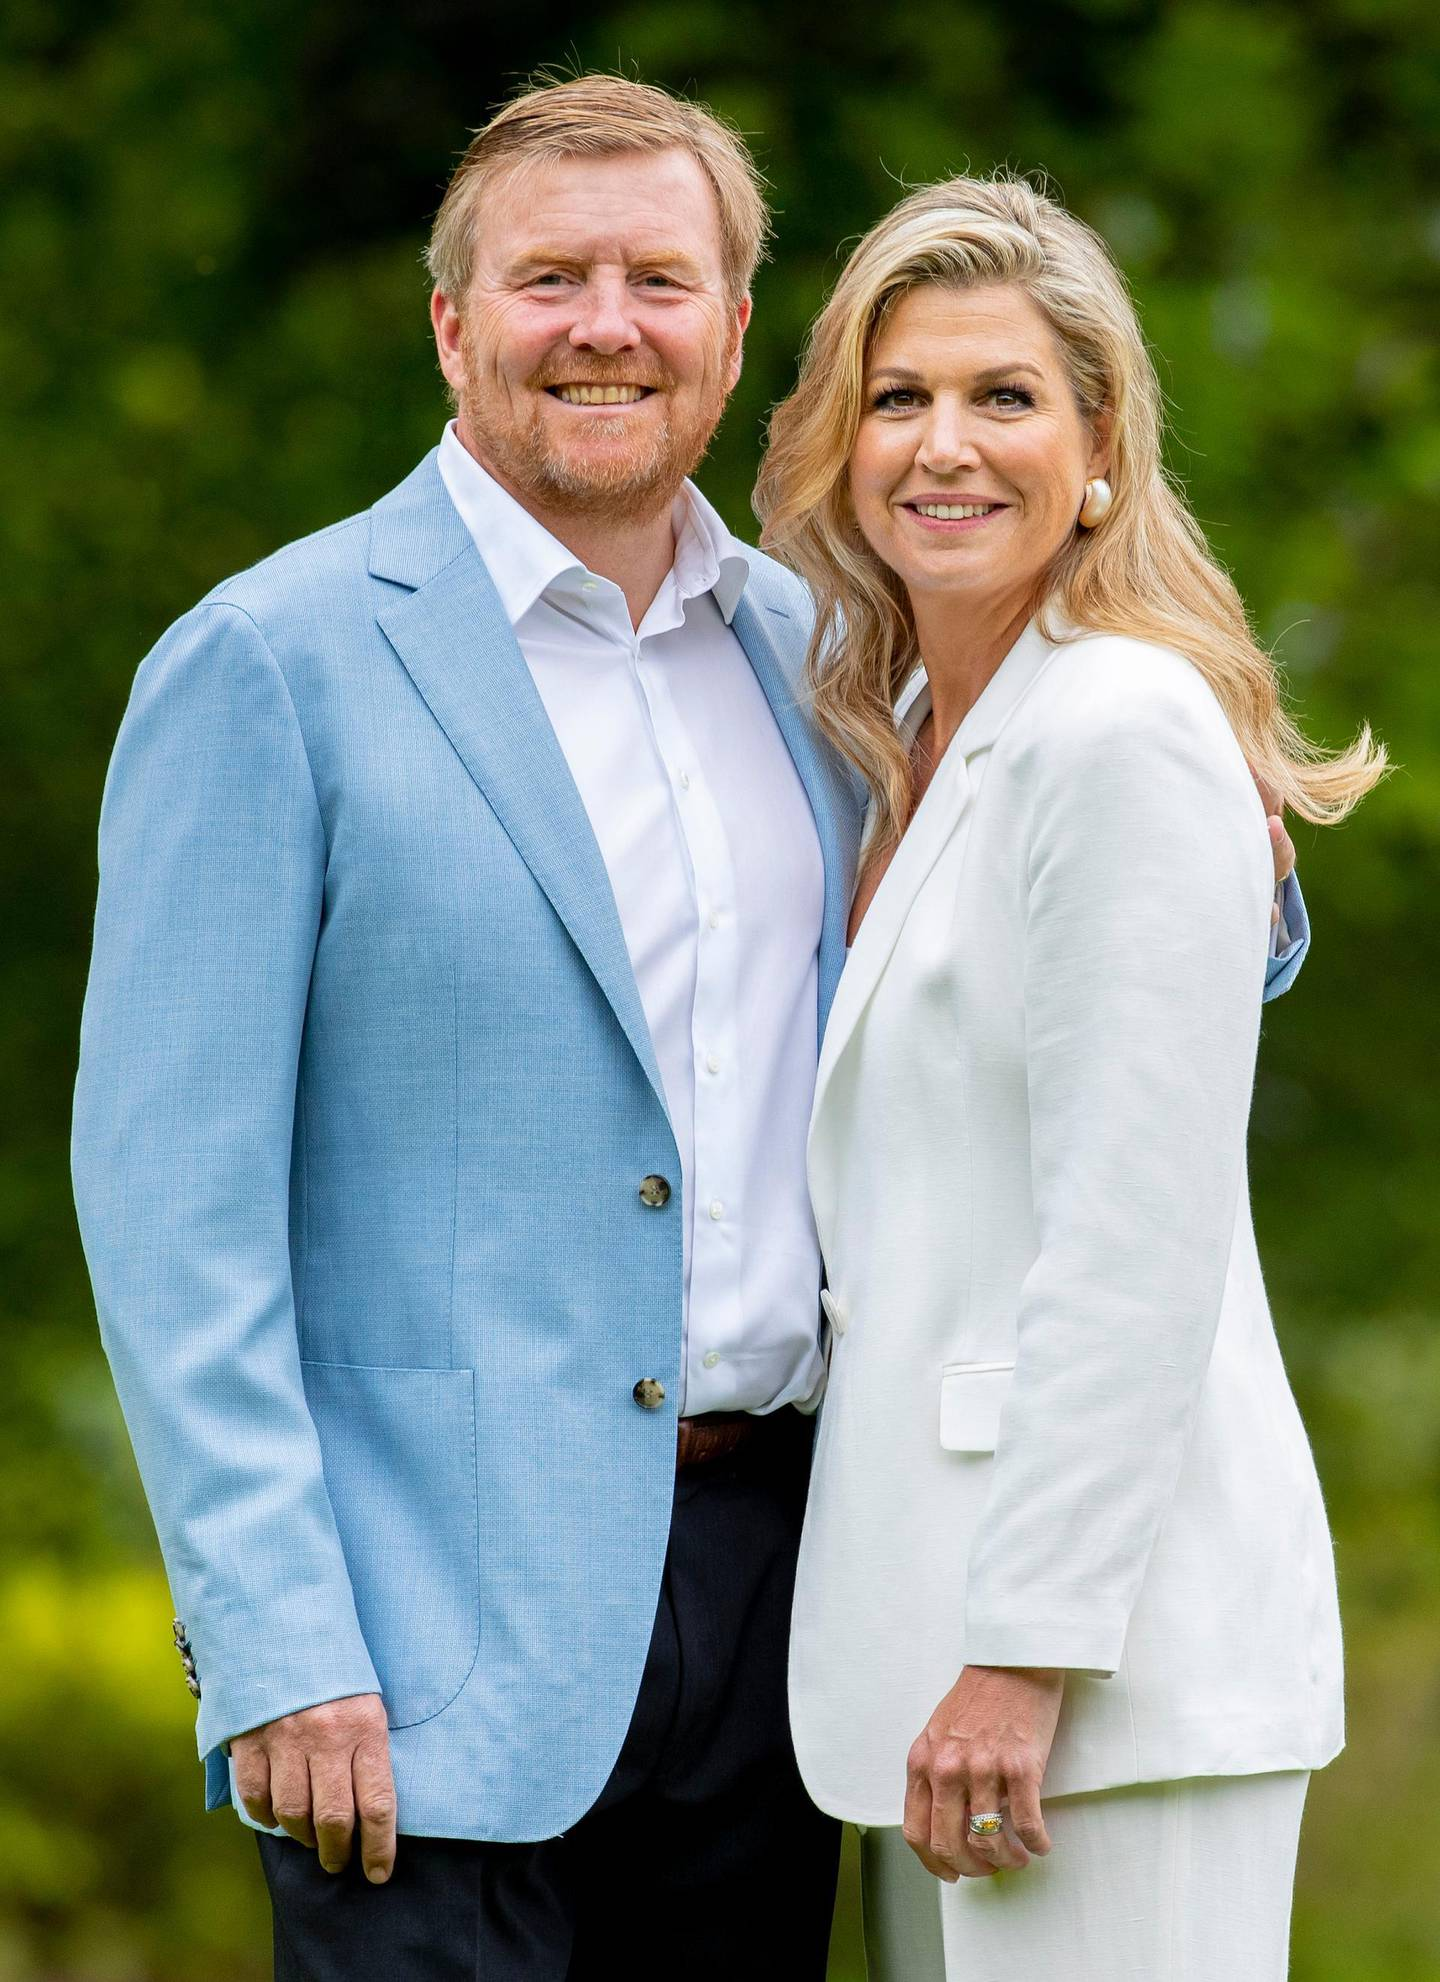 THE HAGUE, NETHERLANDS - JULY 17: King Willem-Alexander of The Netherlands and Queen Maxima of The Netherlands during the annual summer photocall at their residence Palace Huis ten Bosch on July 17, 2020 in The Hague, Netherlands. (Photo by Patrick van Katwijk/Getty Images)